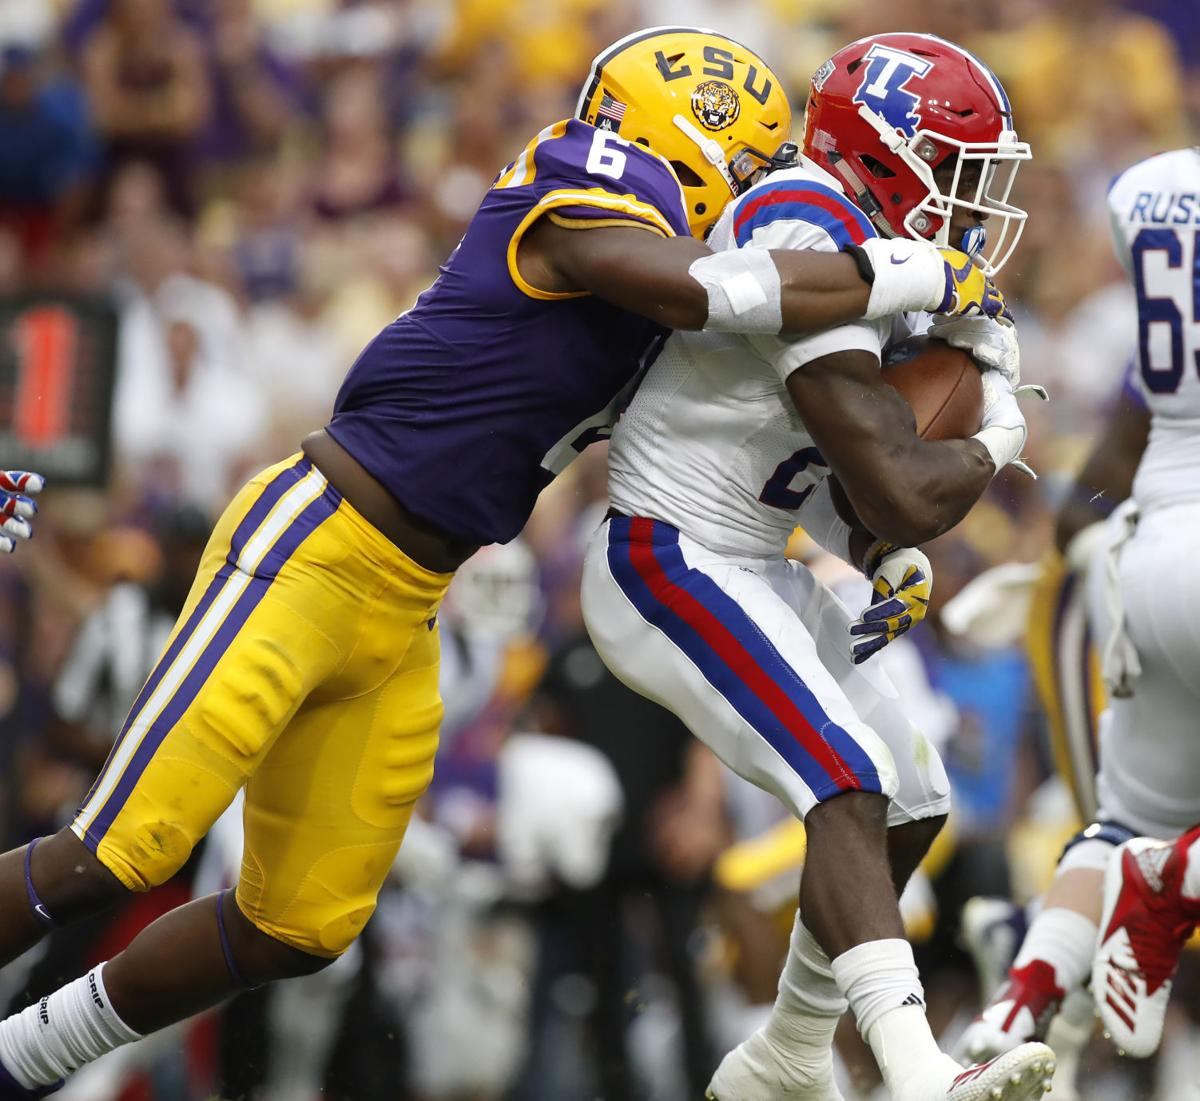 Live Updates What Lsu Coach Ed Orgeron Had To Say After Win Or Louisiana Tech Lsu Theadvocate Com